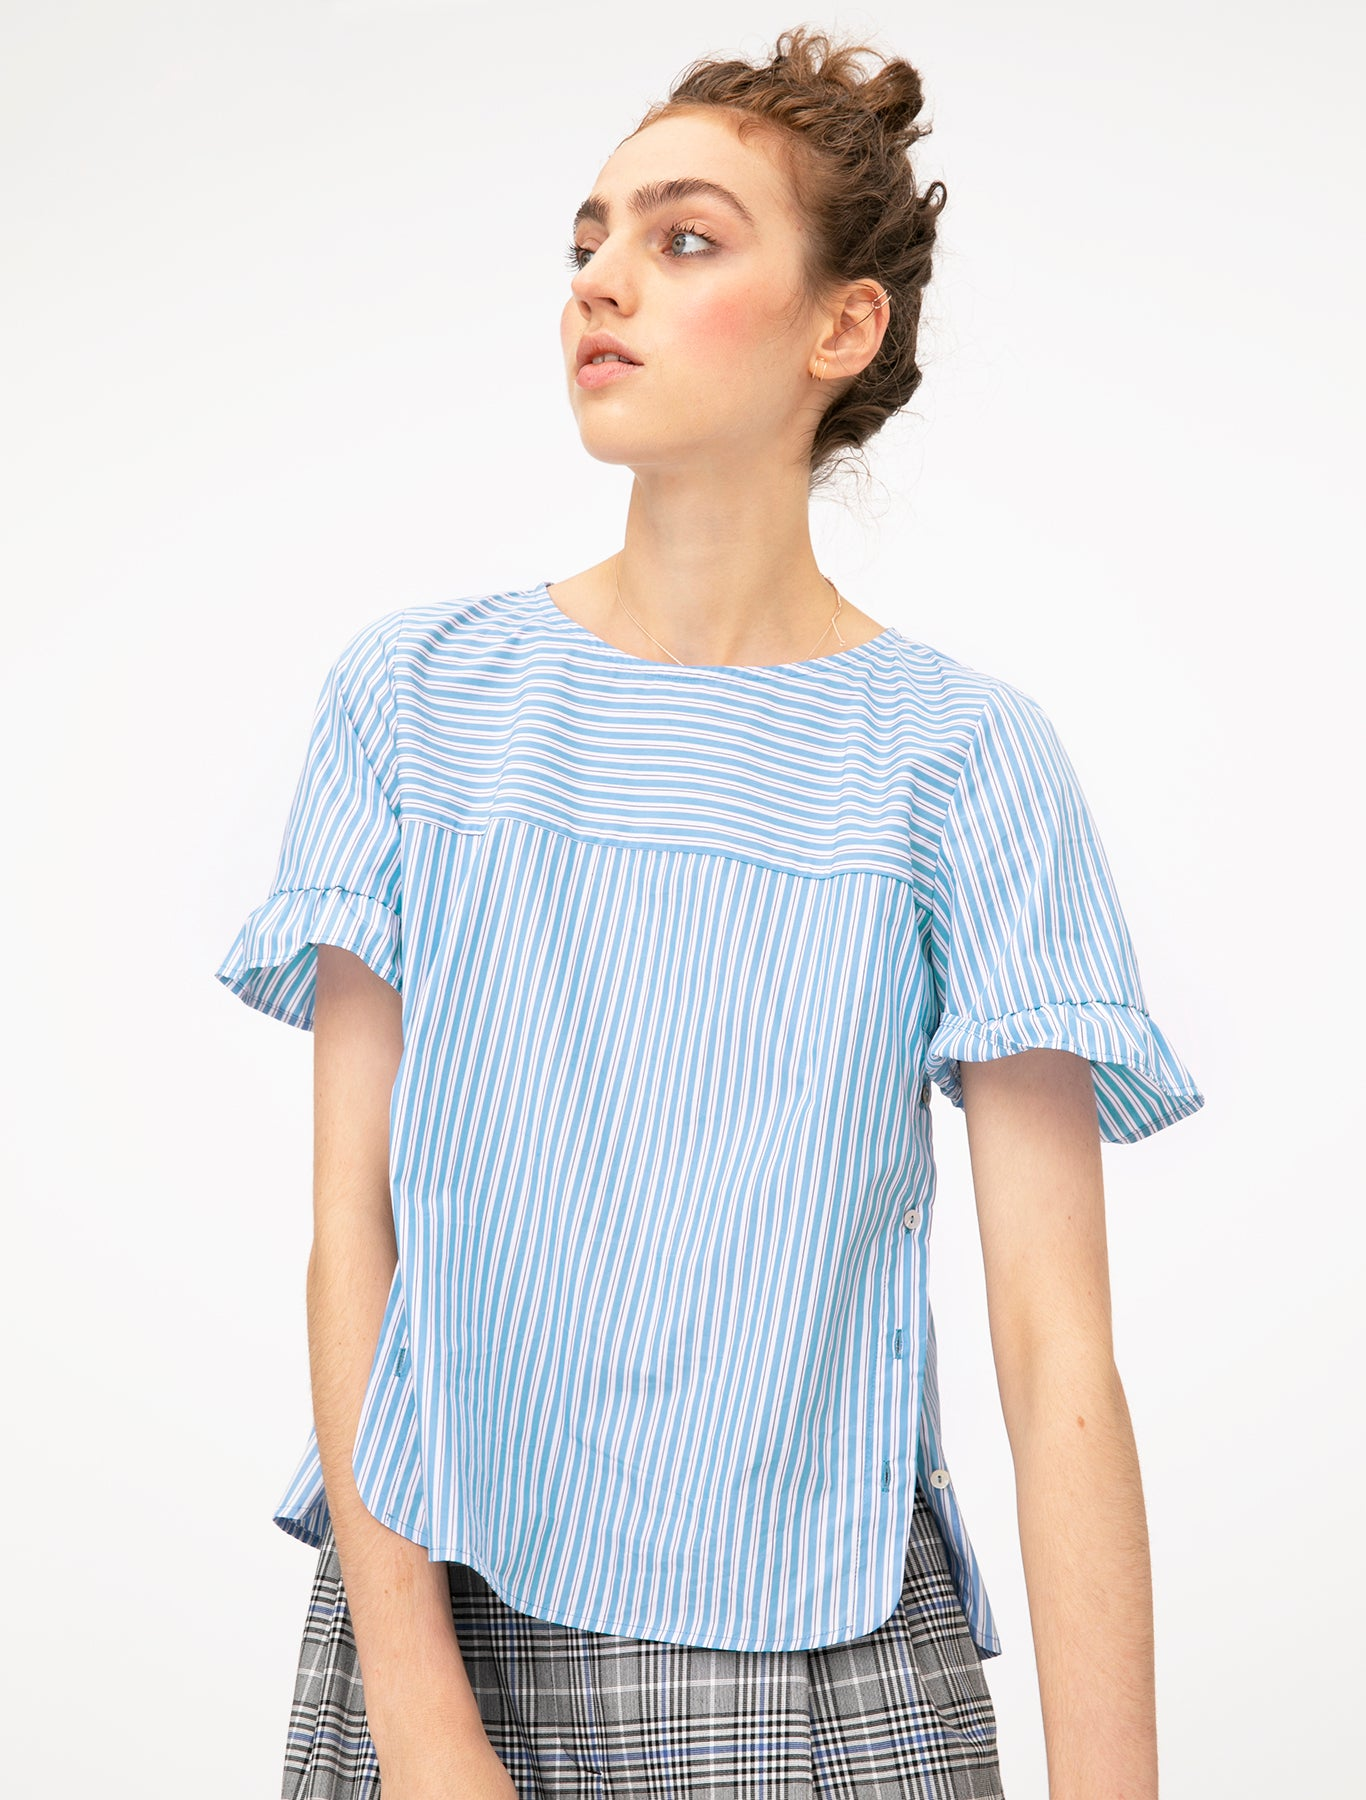 Rumba Top in Blue